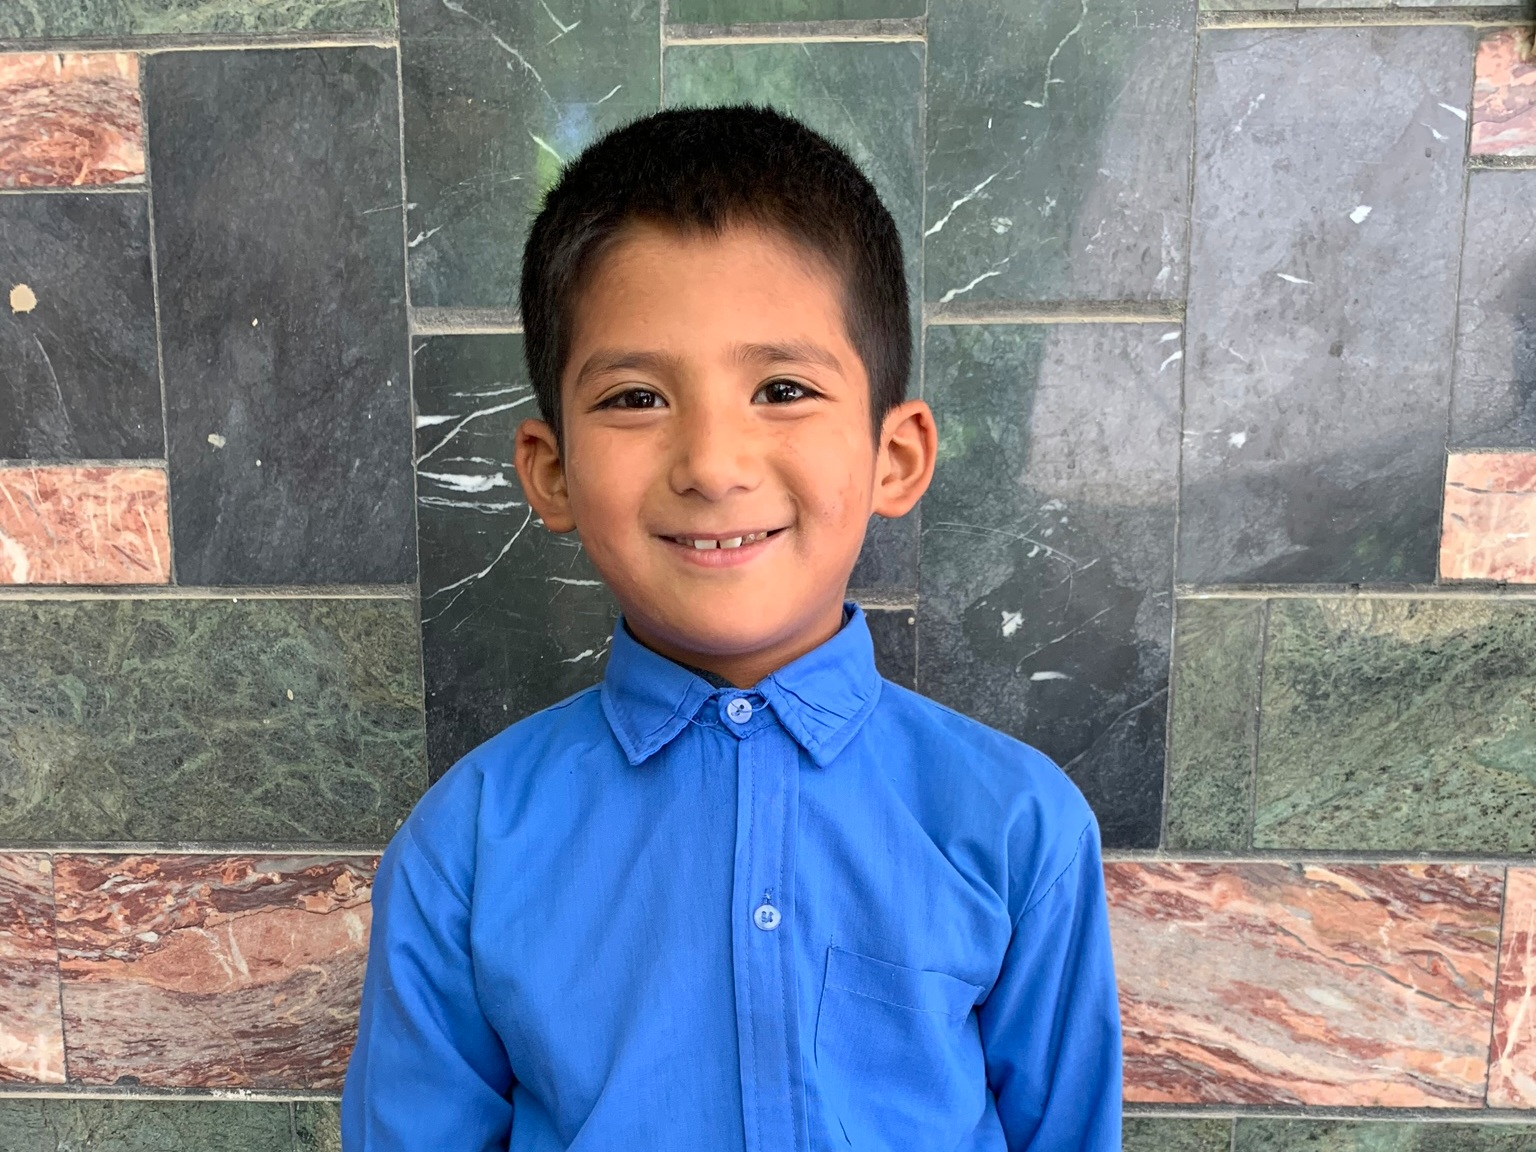 Ali Riza, Age 8 - Ali Riza has 3 siblings. His mother does not have work at this time. His father is a shopkeeper.BE ALI RIZA'S PARTNER>